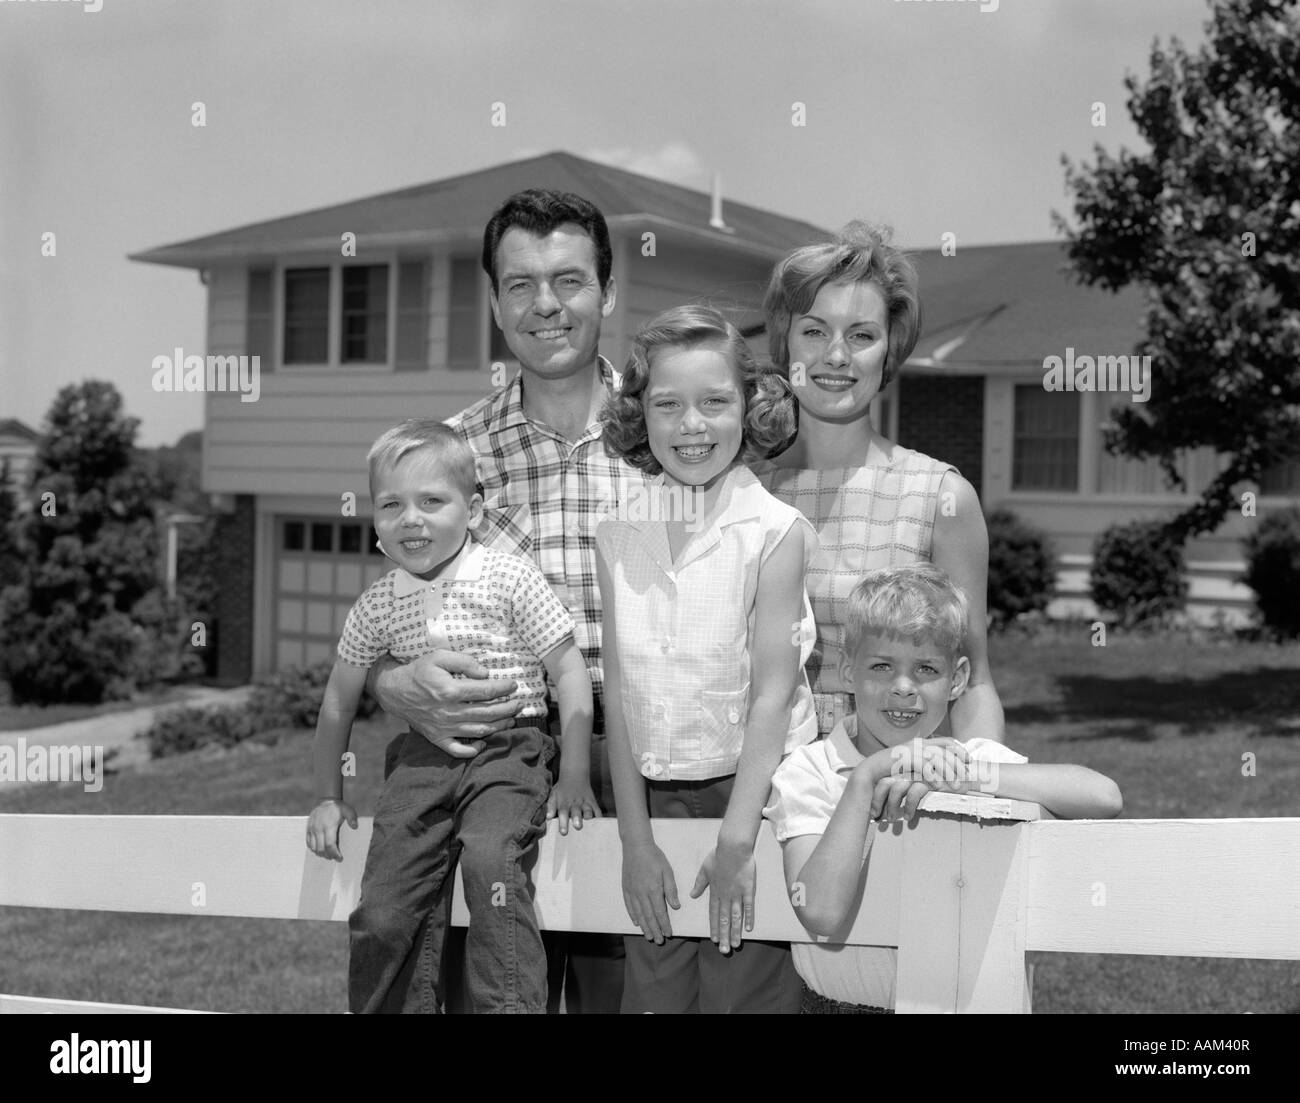 1960s FAMILY PORTRAIT IN FRONT OF HOUSE ON FENCE - Stock Image